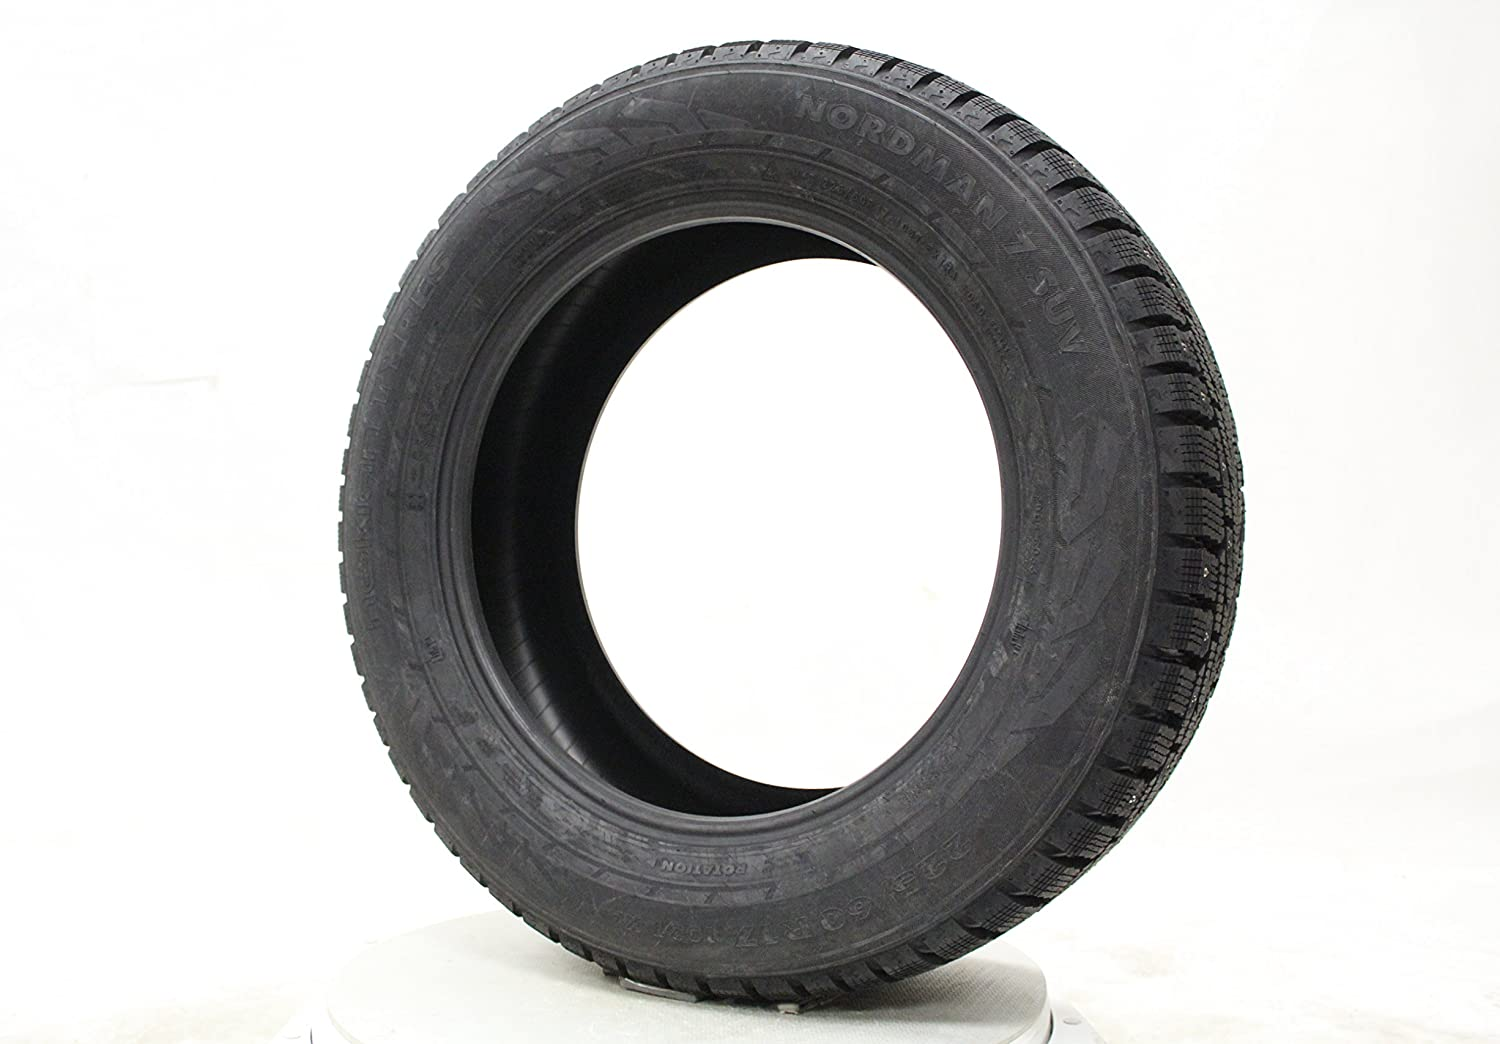 Nokian Nordman 7 SUV Studded Winter 215 98T - 70R15 unisex Tire Free shipping anywhere in the nation